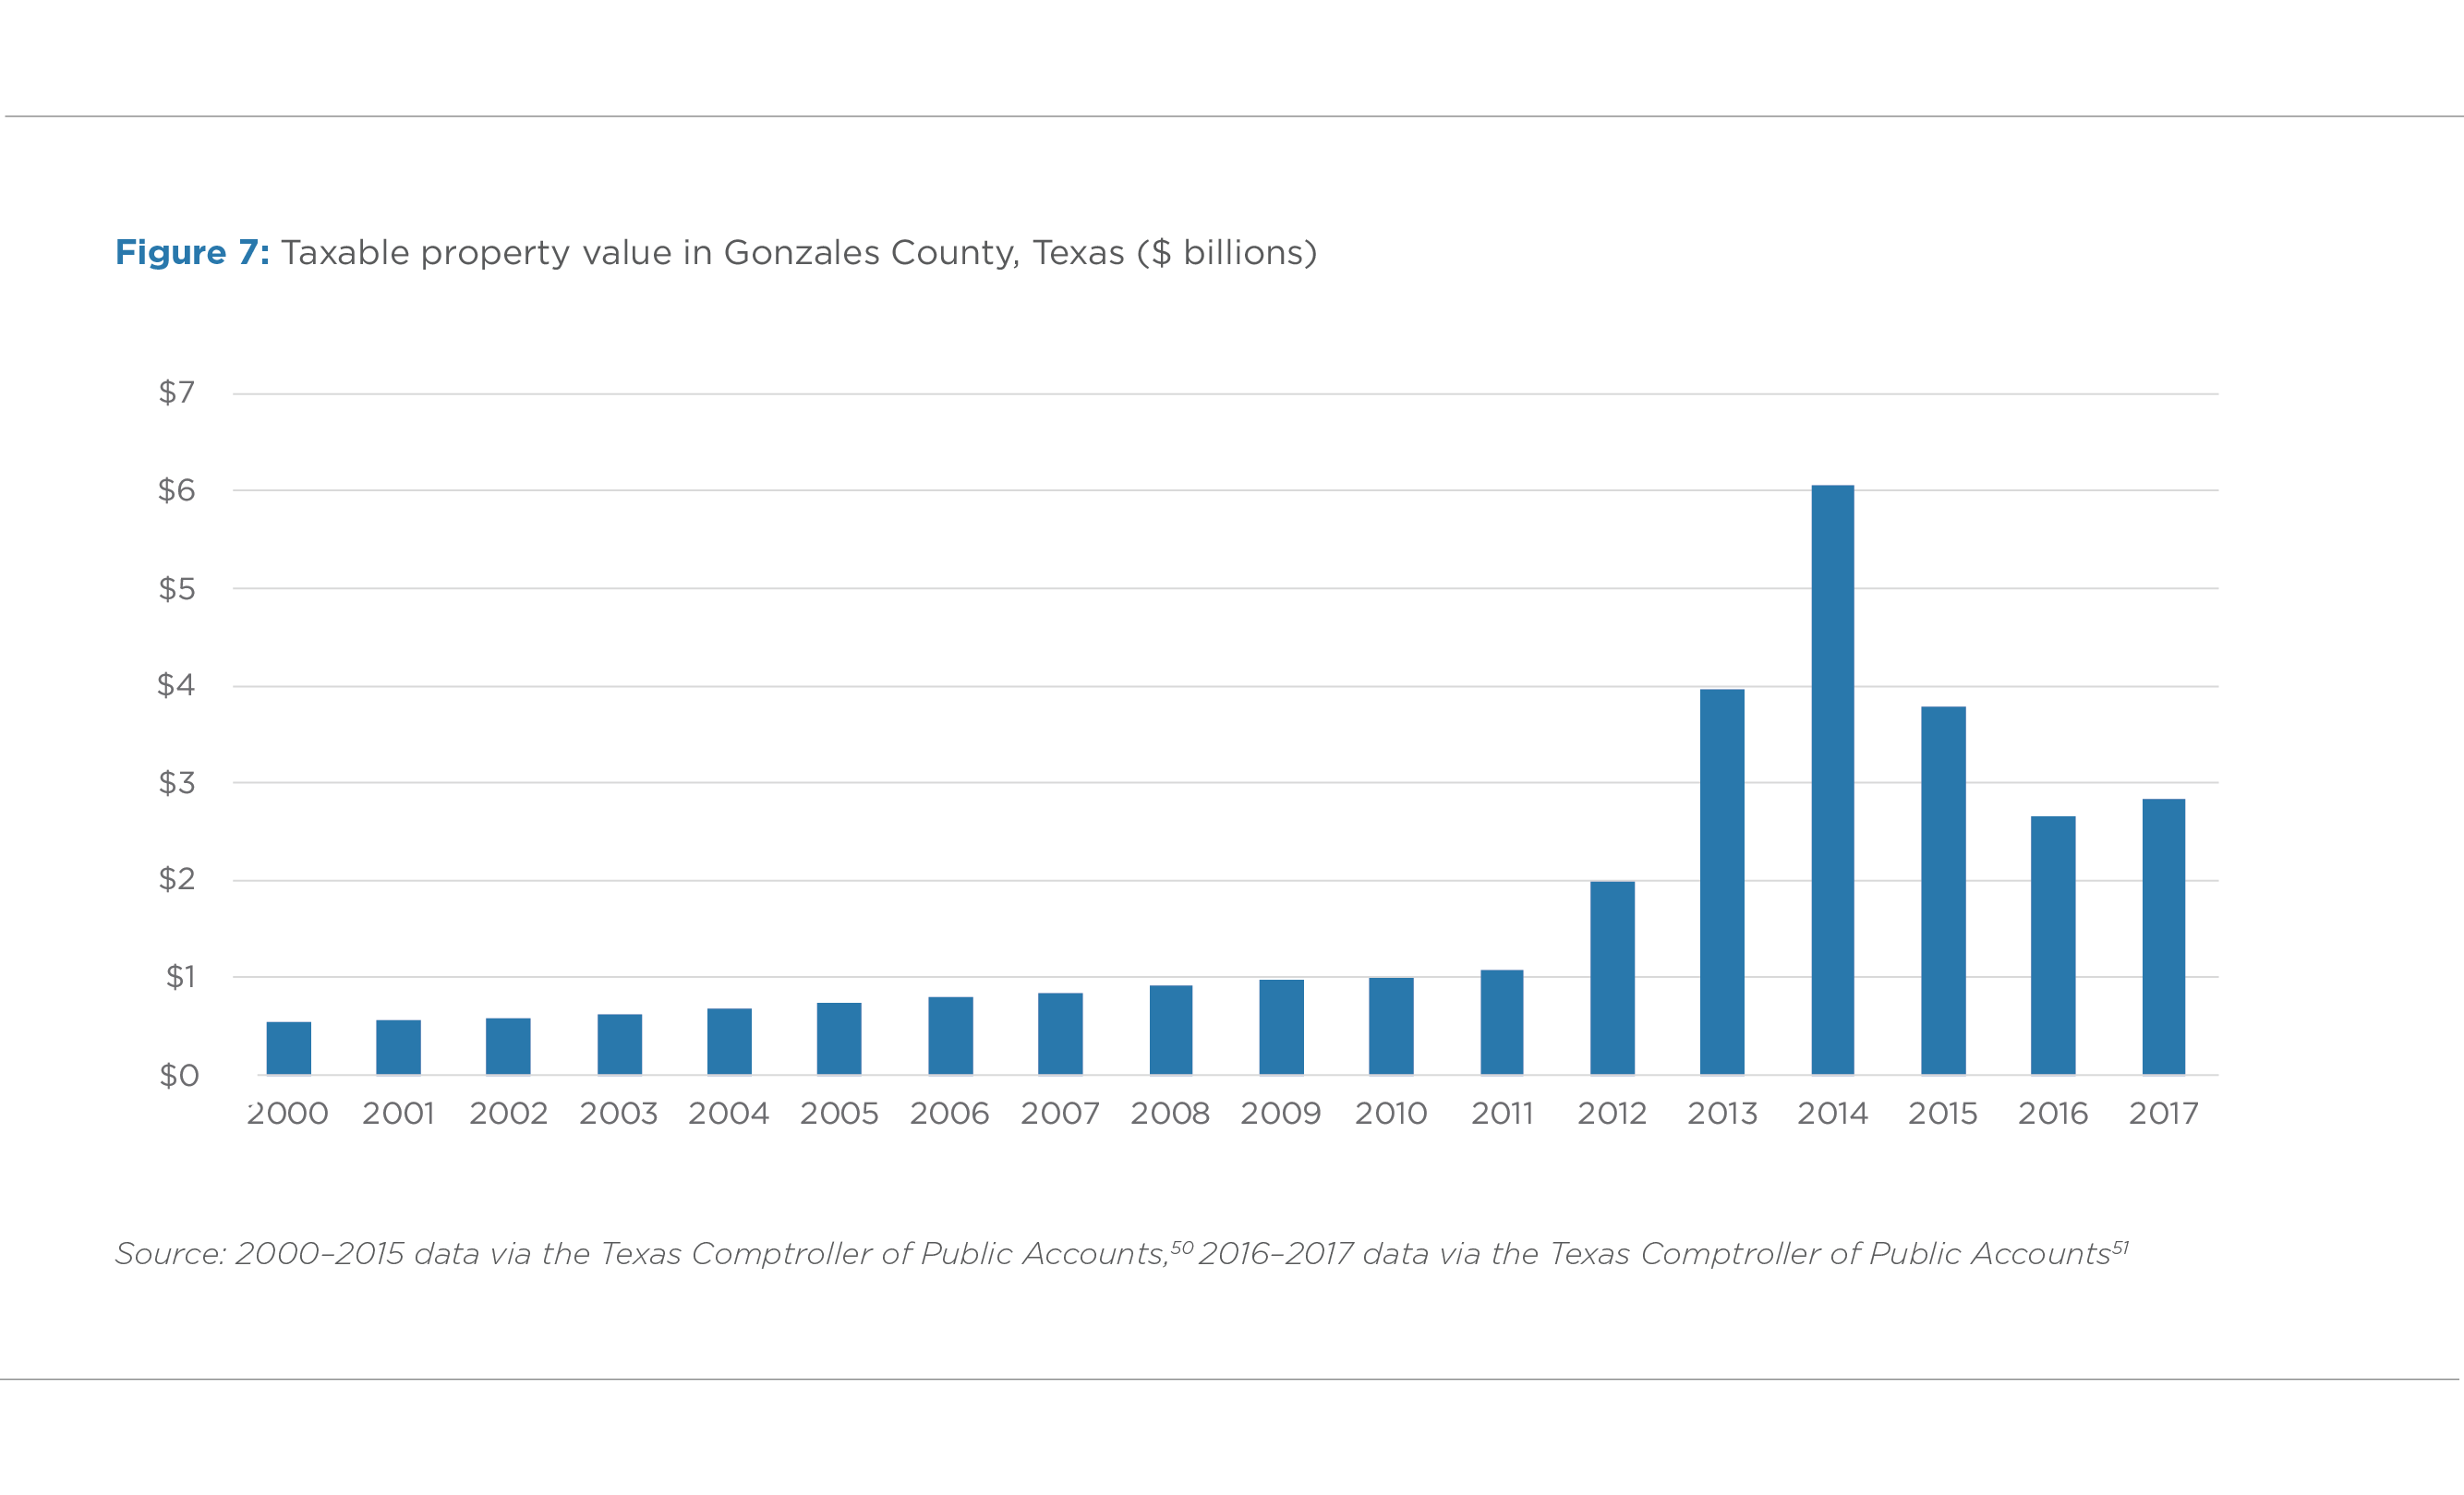 FIGURE 7. TAXABLE PROPERTY VALUE IN GONZALES COUNTY, TEXAS